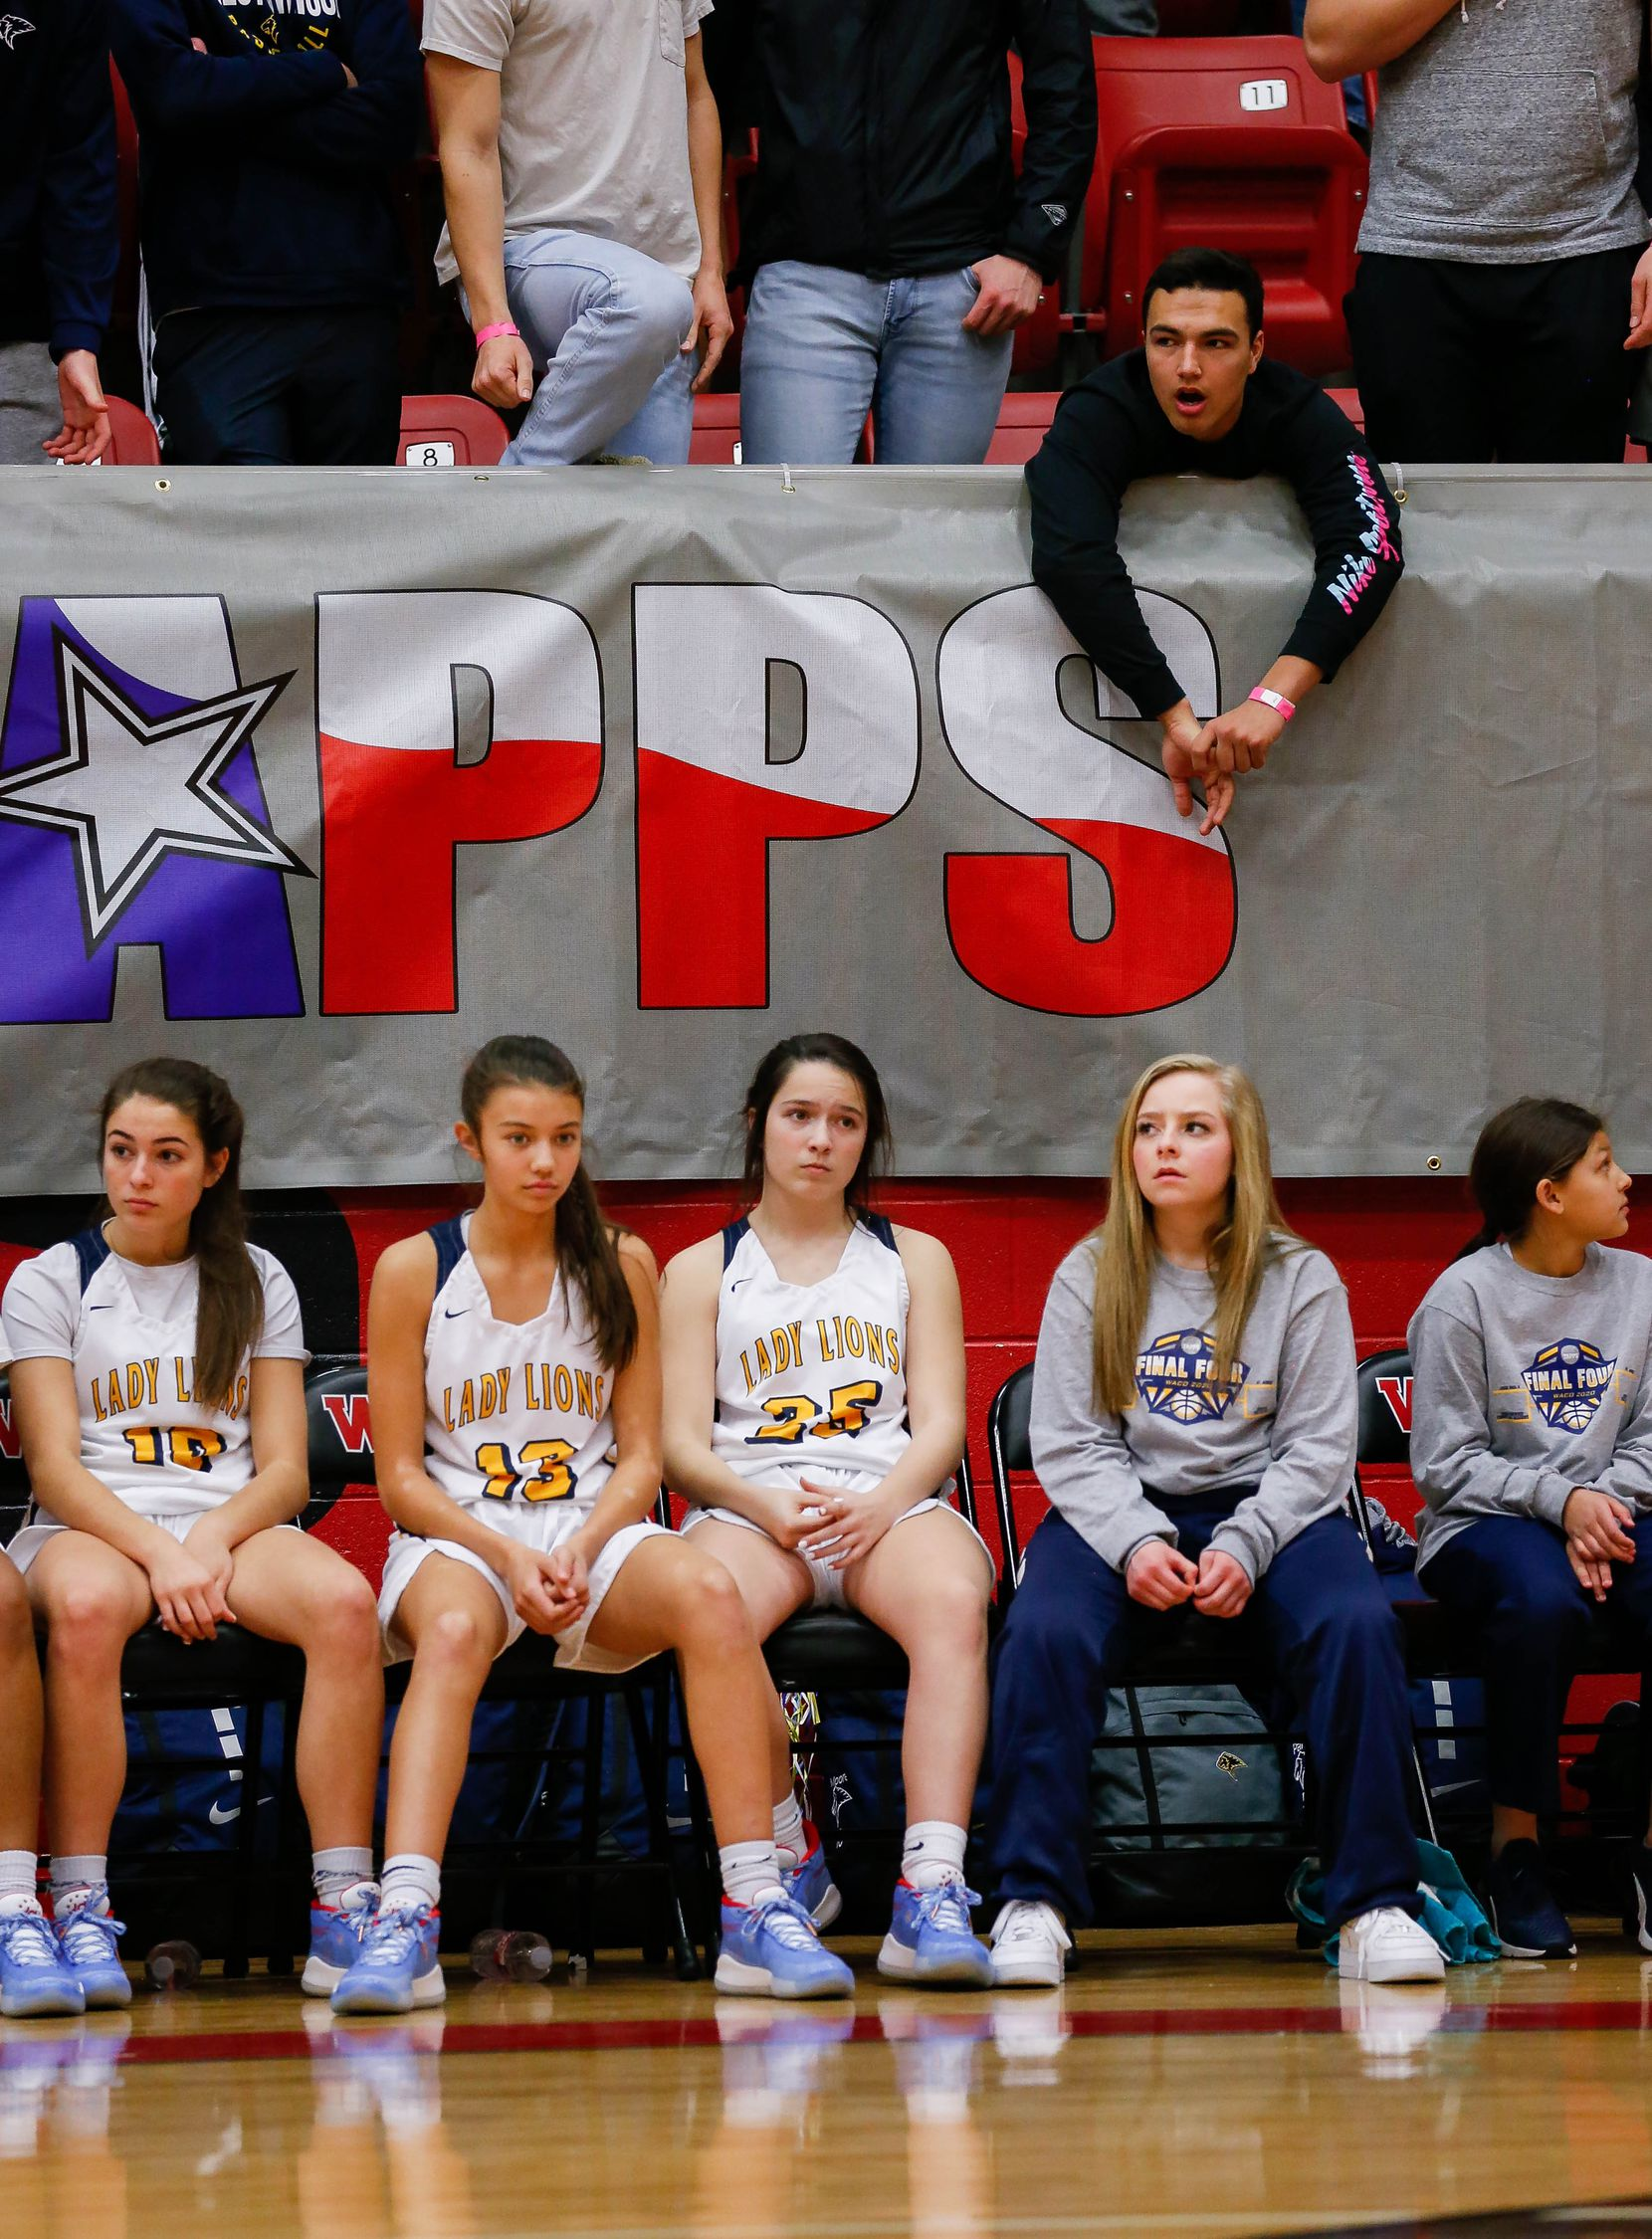 Plano Prestonwood Christian players and fans look dejected as they fall behind during the first half of a TAPPS Class 6A girls basketball state championship game against the Village School on Feb. 28, 2020 in West. Prestonwood lost 75-48.